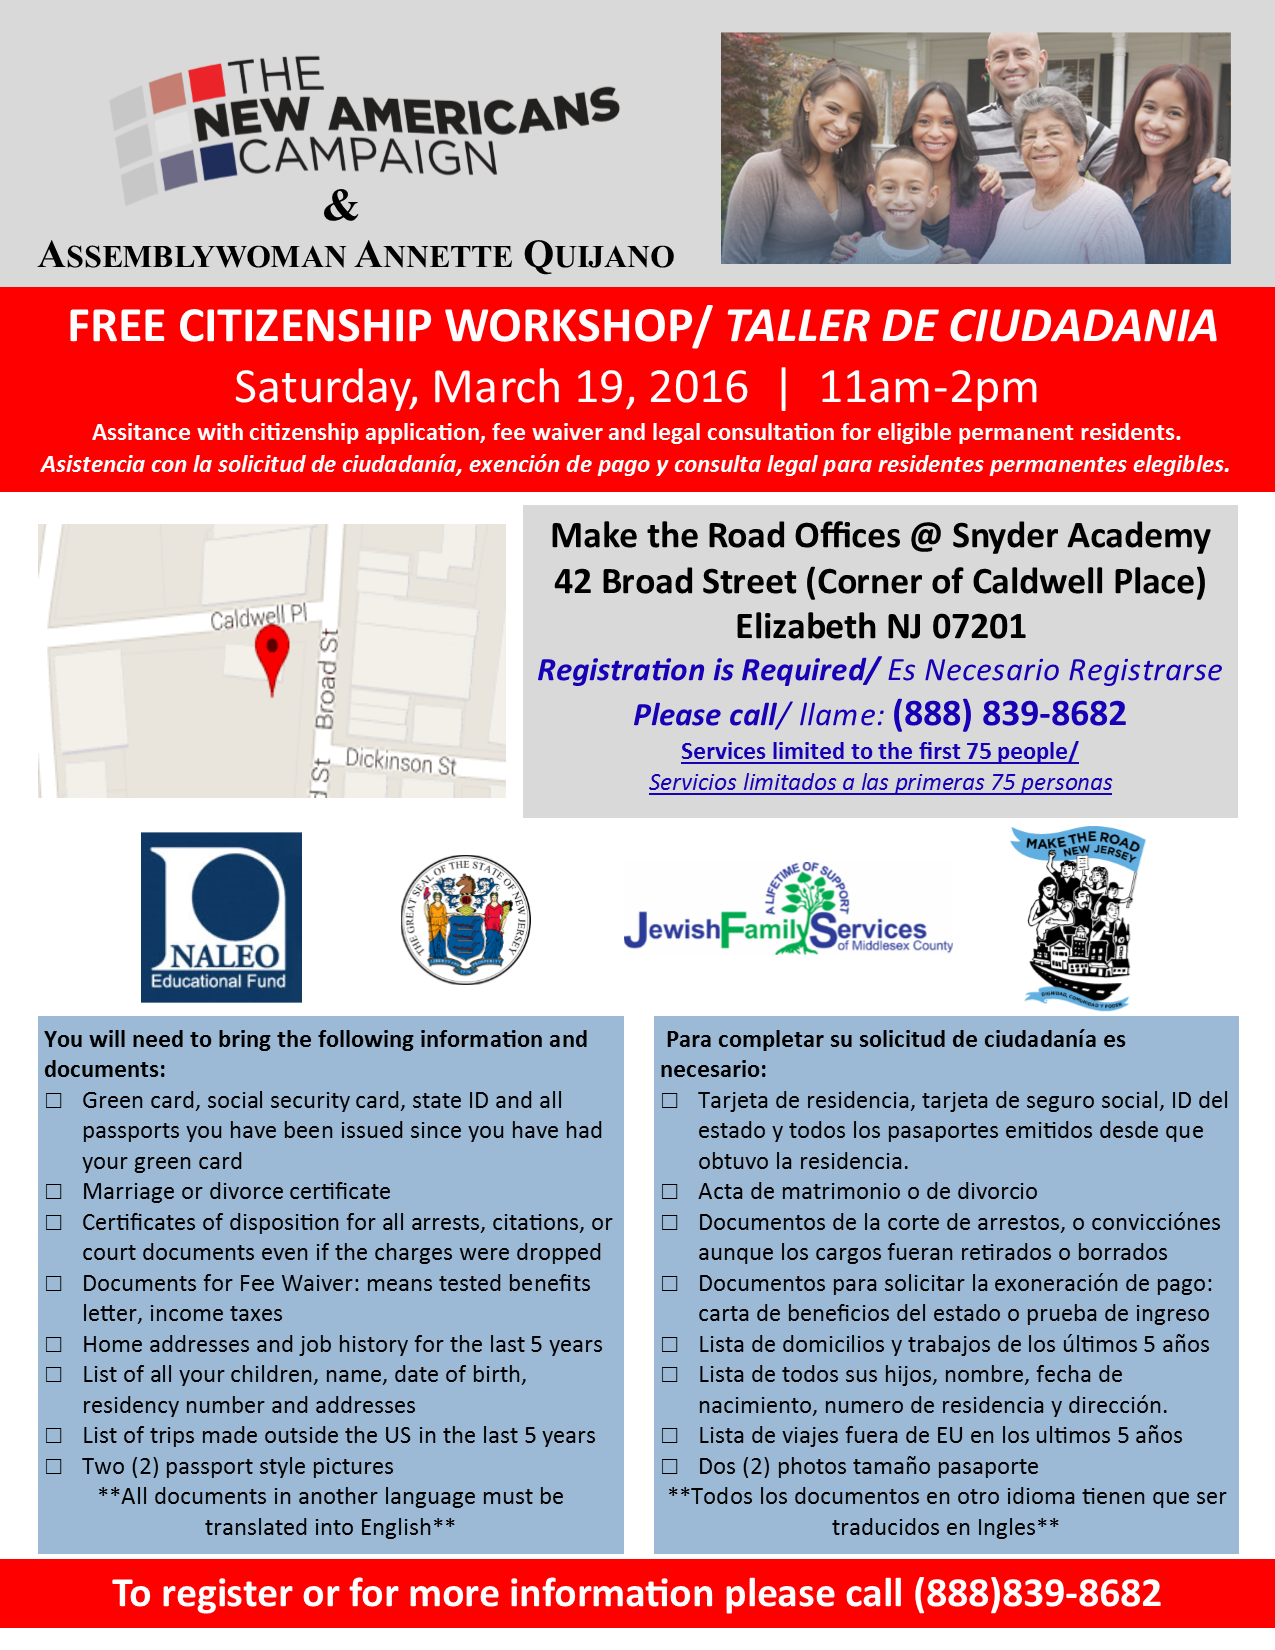 1bb471536d3d0d2fdfc1_Citizen_workshop_flyer.jpg